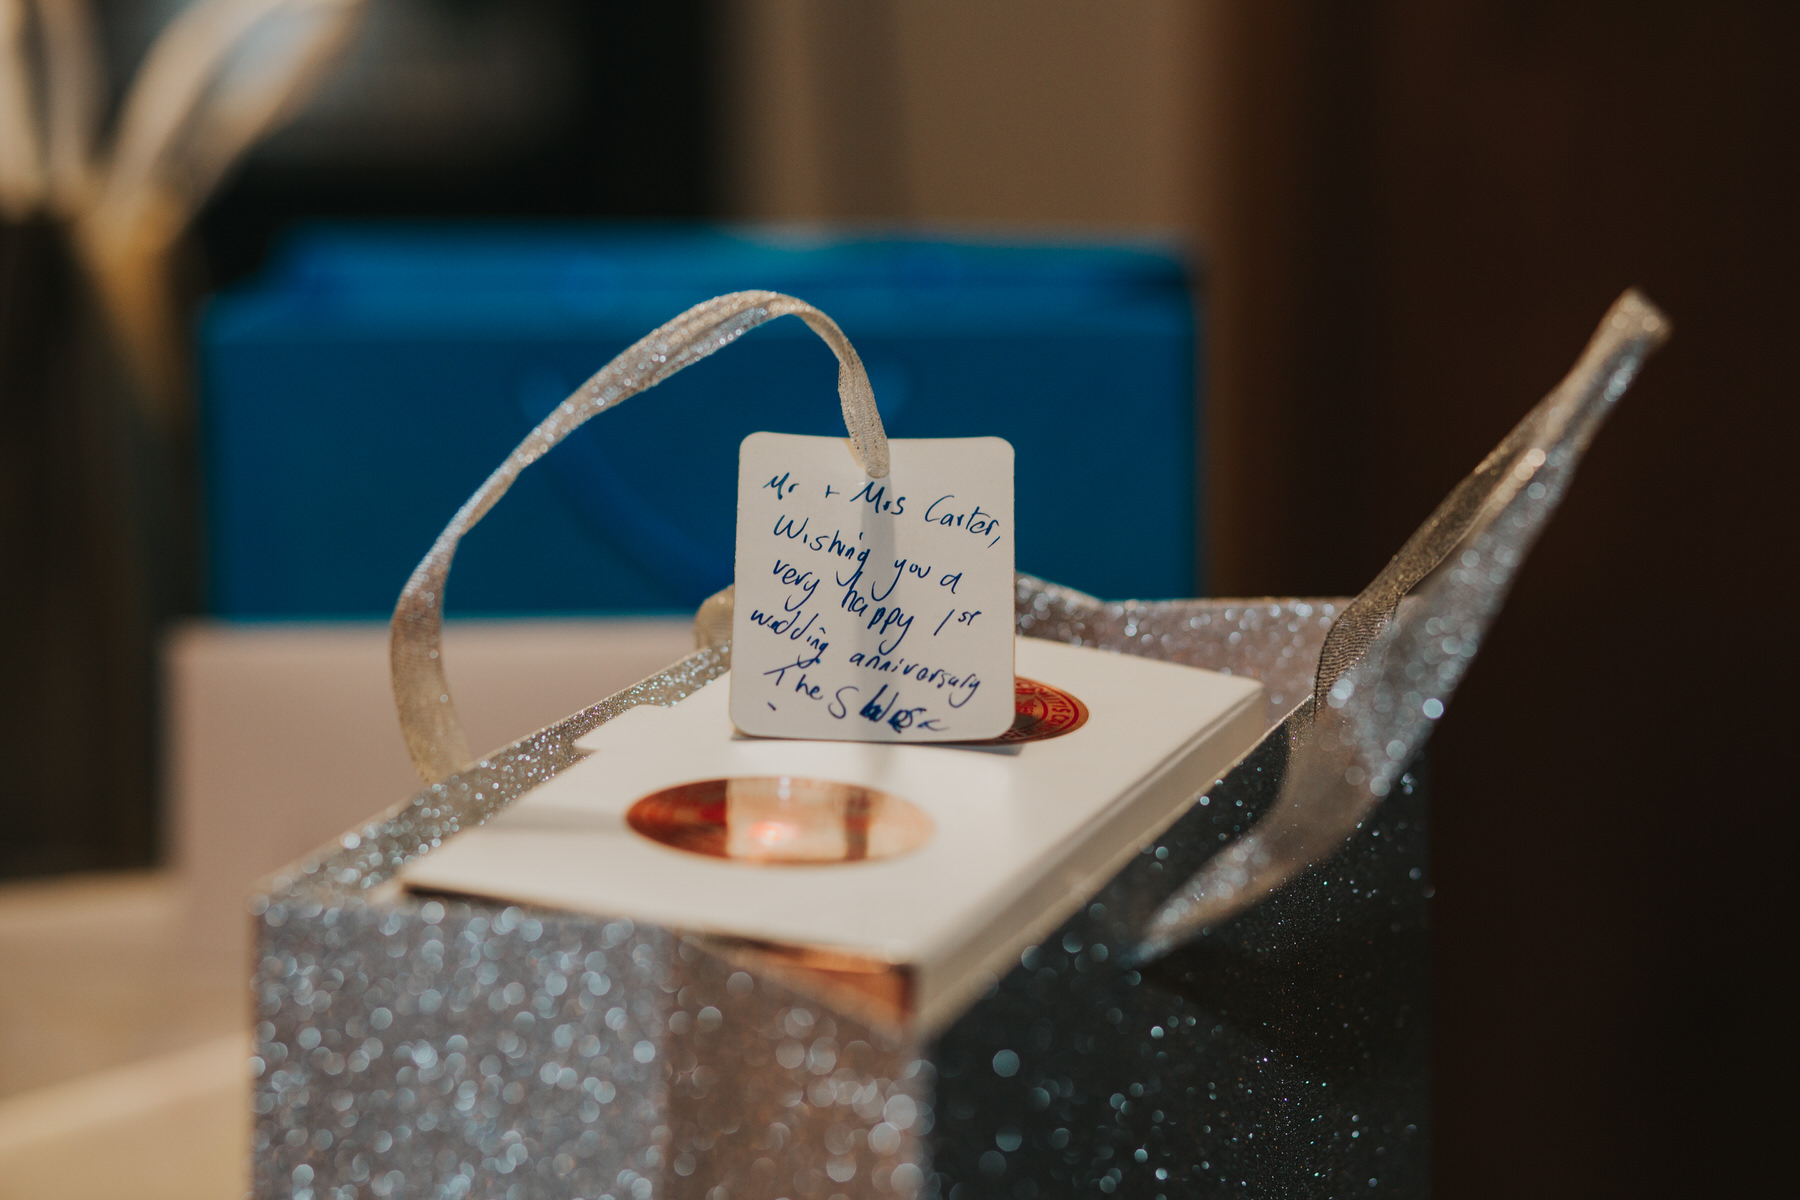 146.3-St Chads Place wedding gift note.jpg